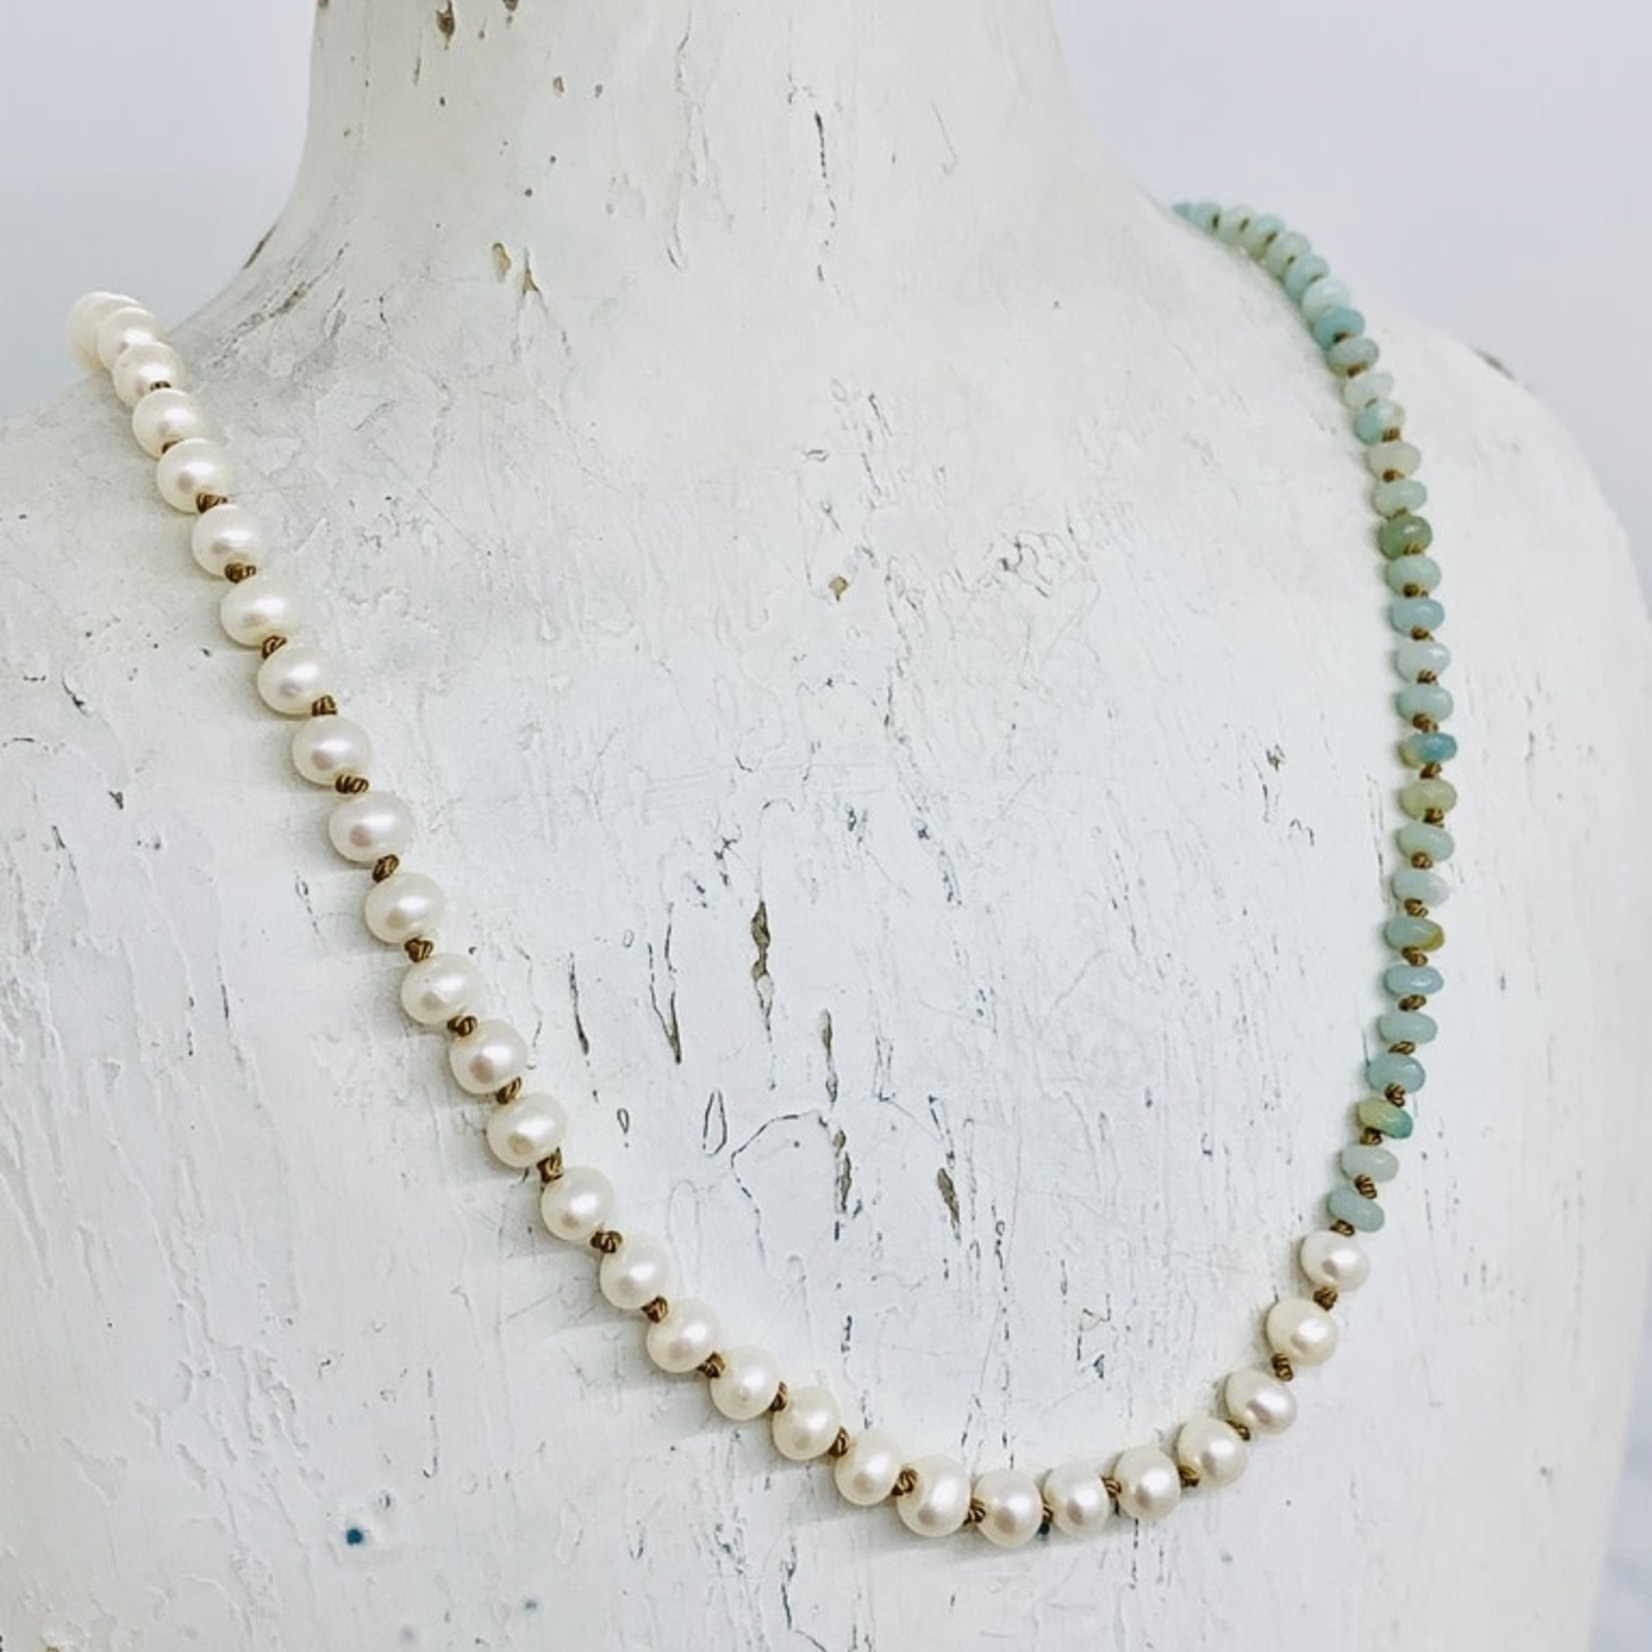 Handmade necklace with faceted amazonite, white pearls knotted on natural silk, toggle